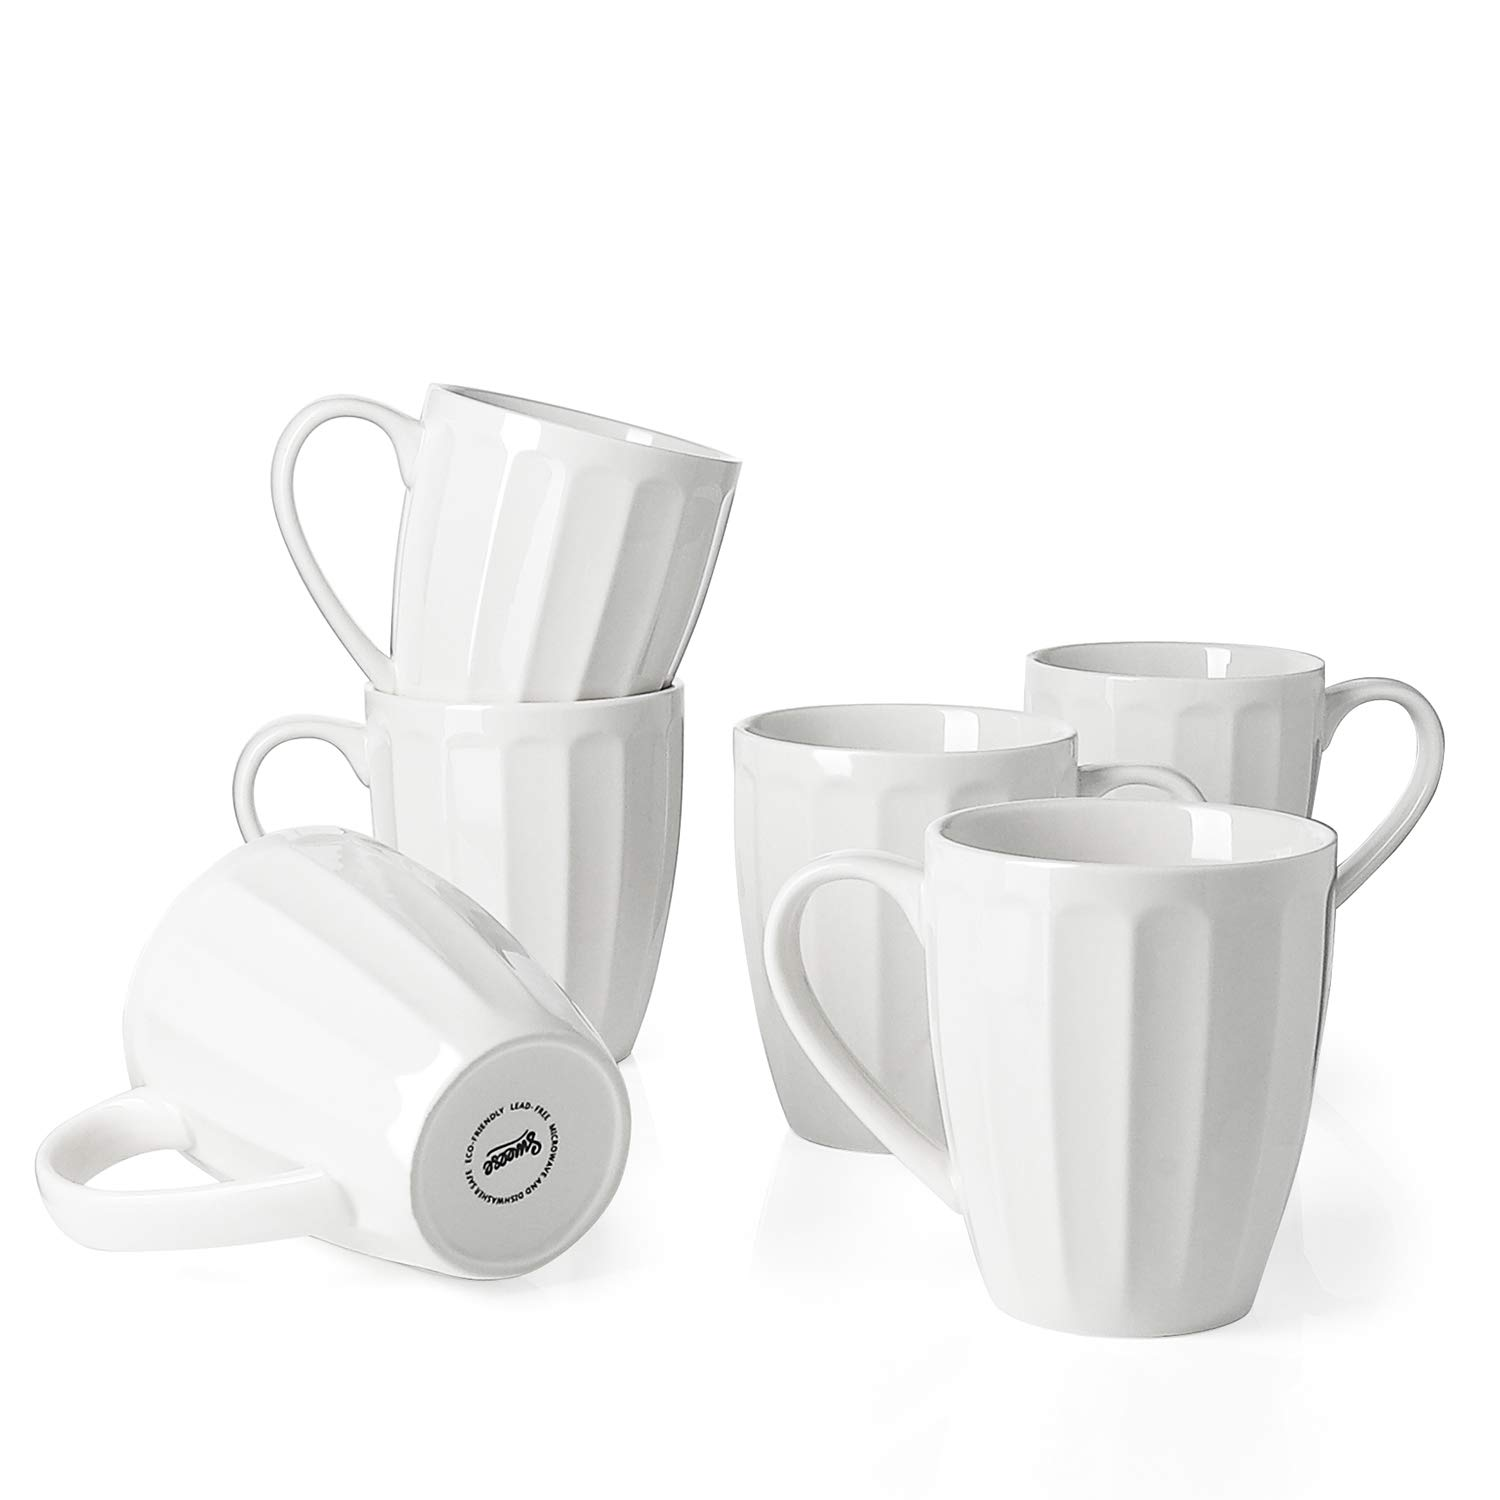 Sweese 6208 Porcelain Fluted Mugs - 14 Ounce for Coffee, Tea, Cocoa, Set of 6, White by Sweese (Image #1)